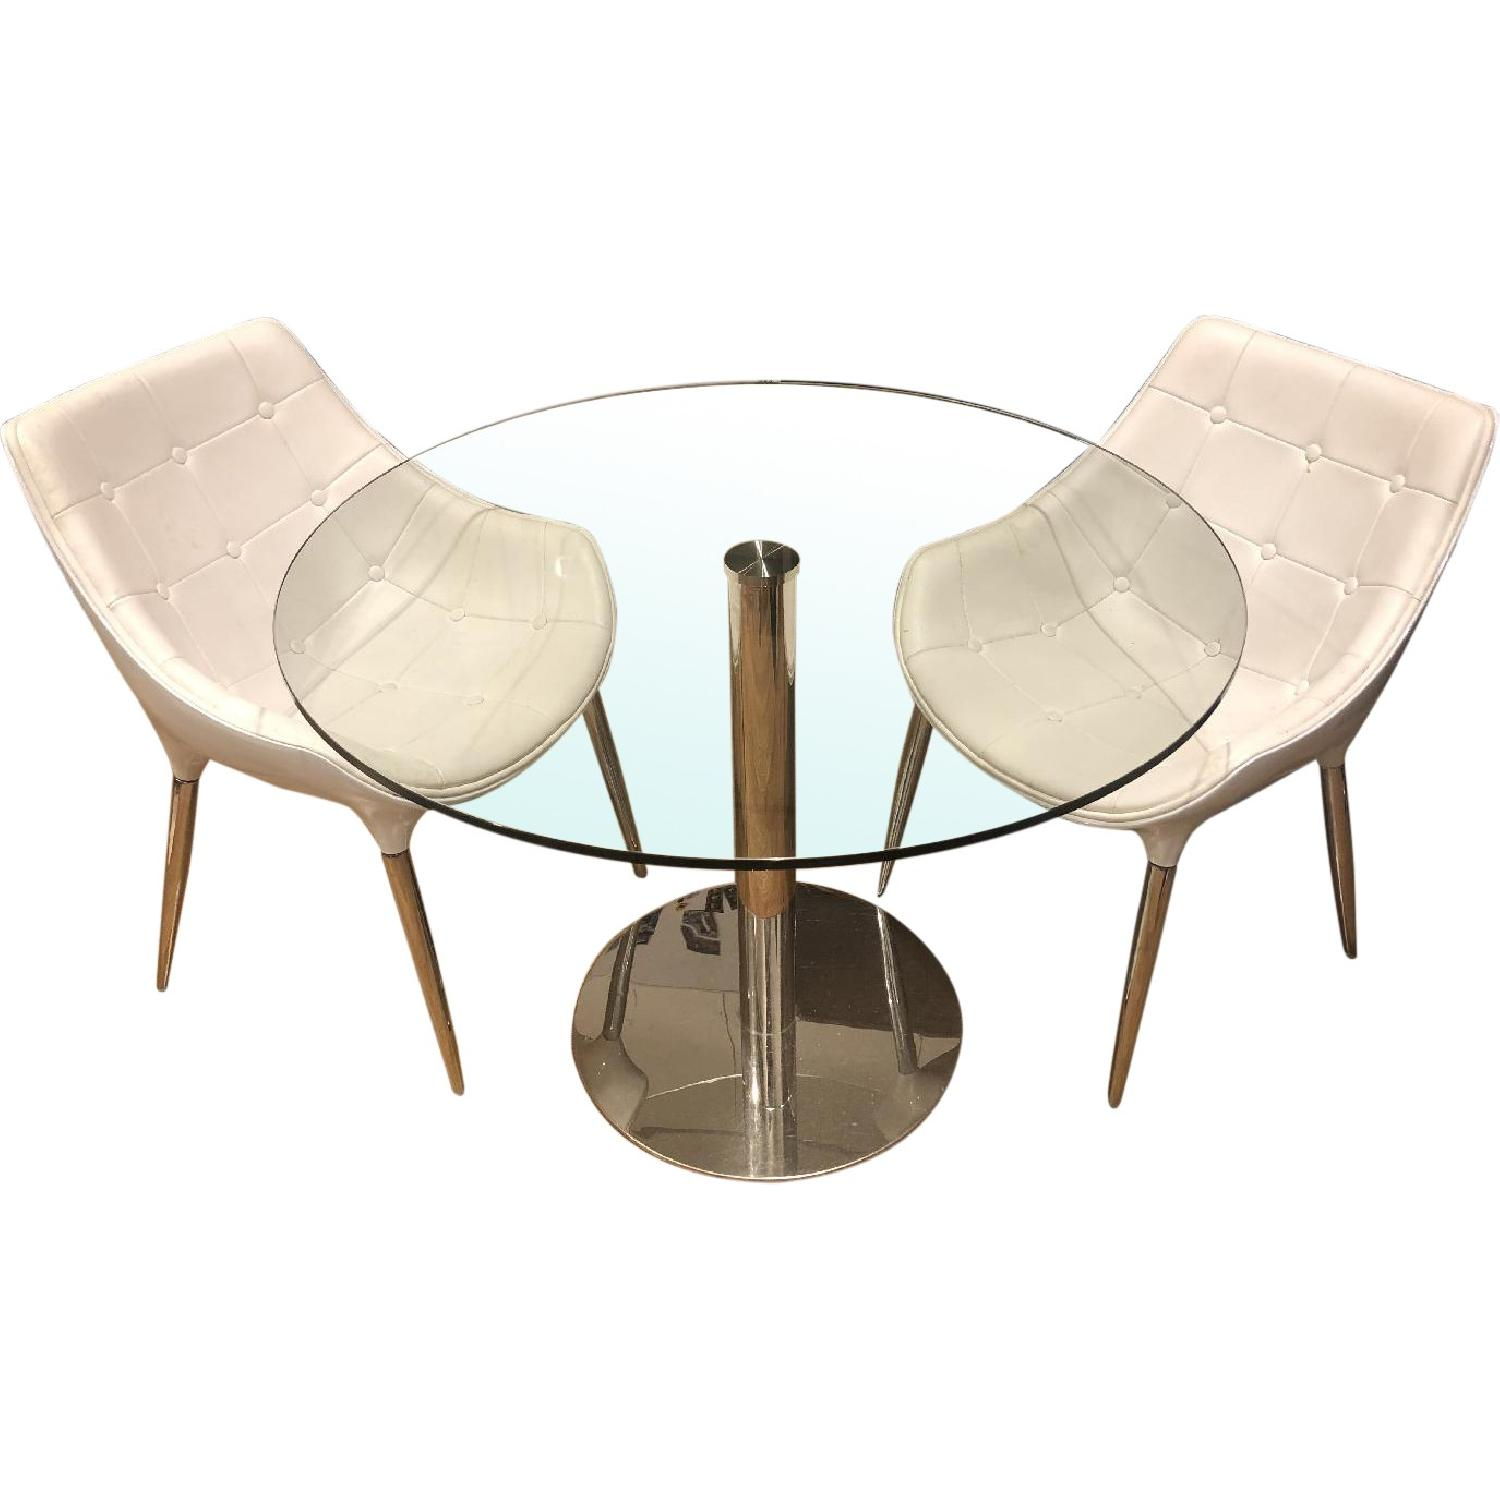 Modani Eve Dining Table w/ 2 Chairs - image-0